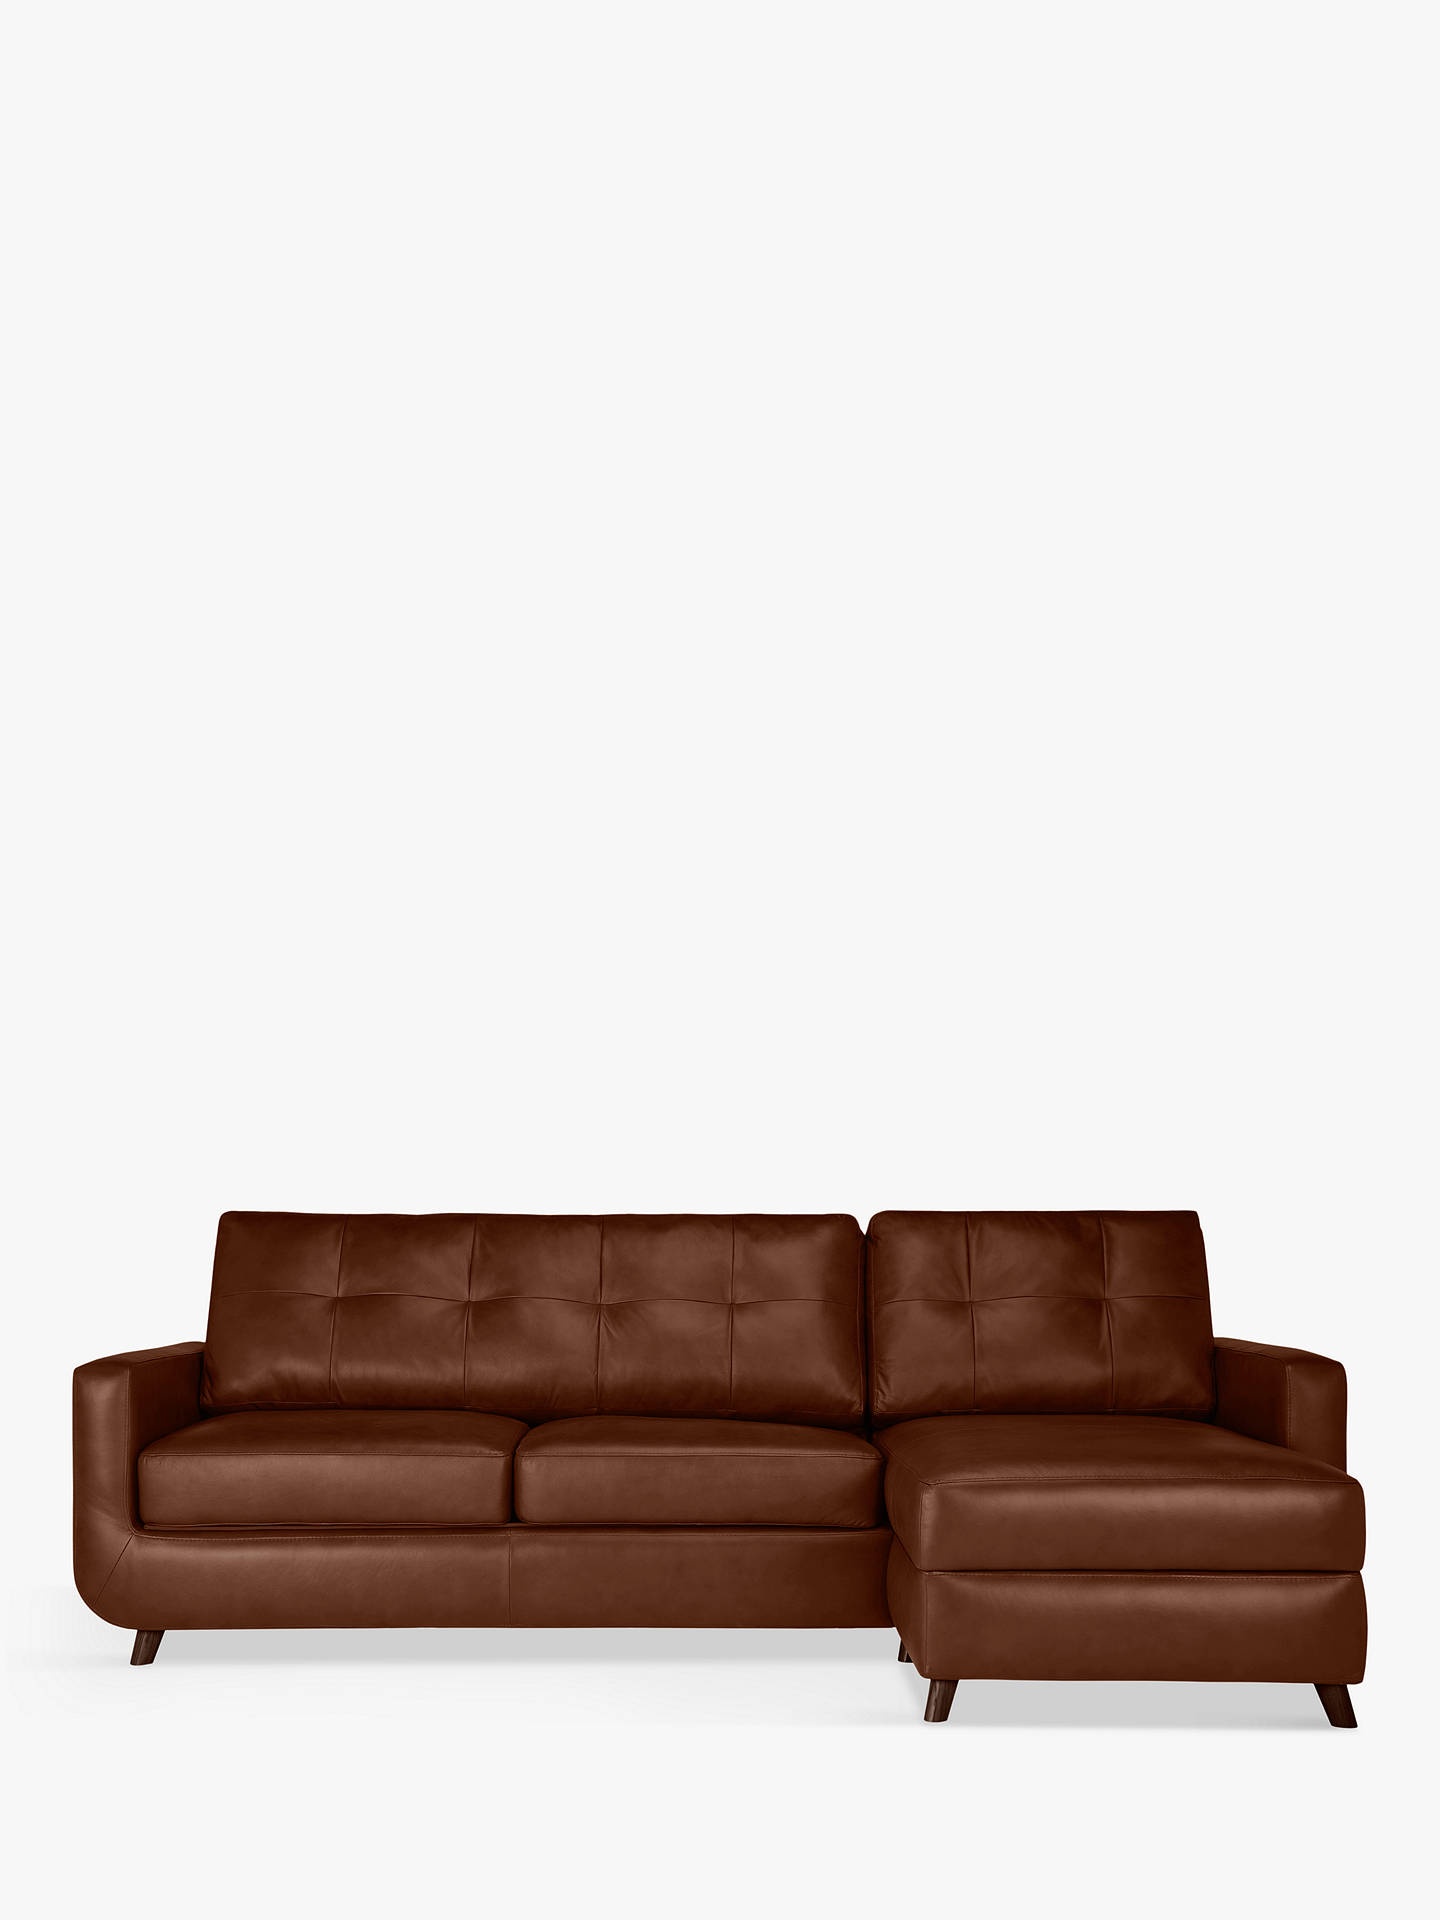 John Lewis Partners Barbican Leather Sofa Bed Rhf Chaise